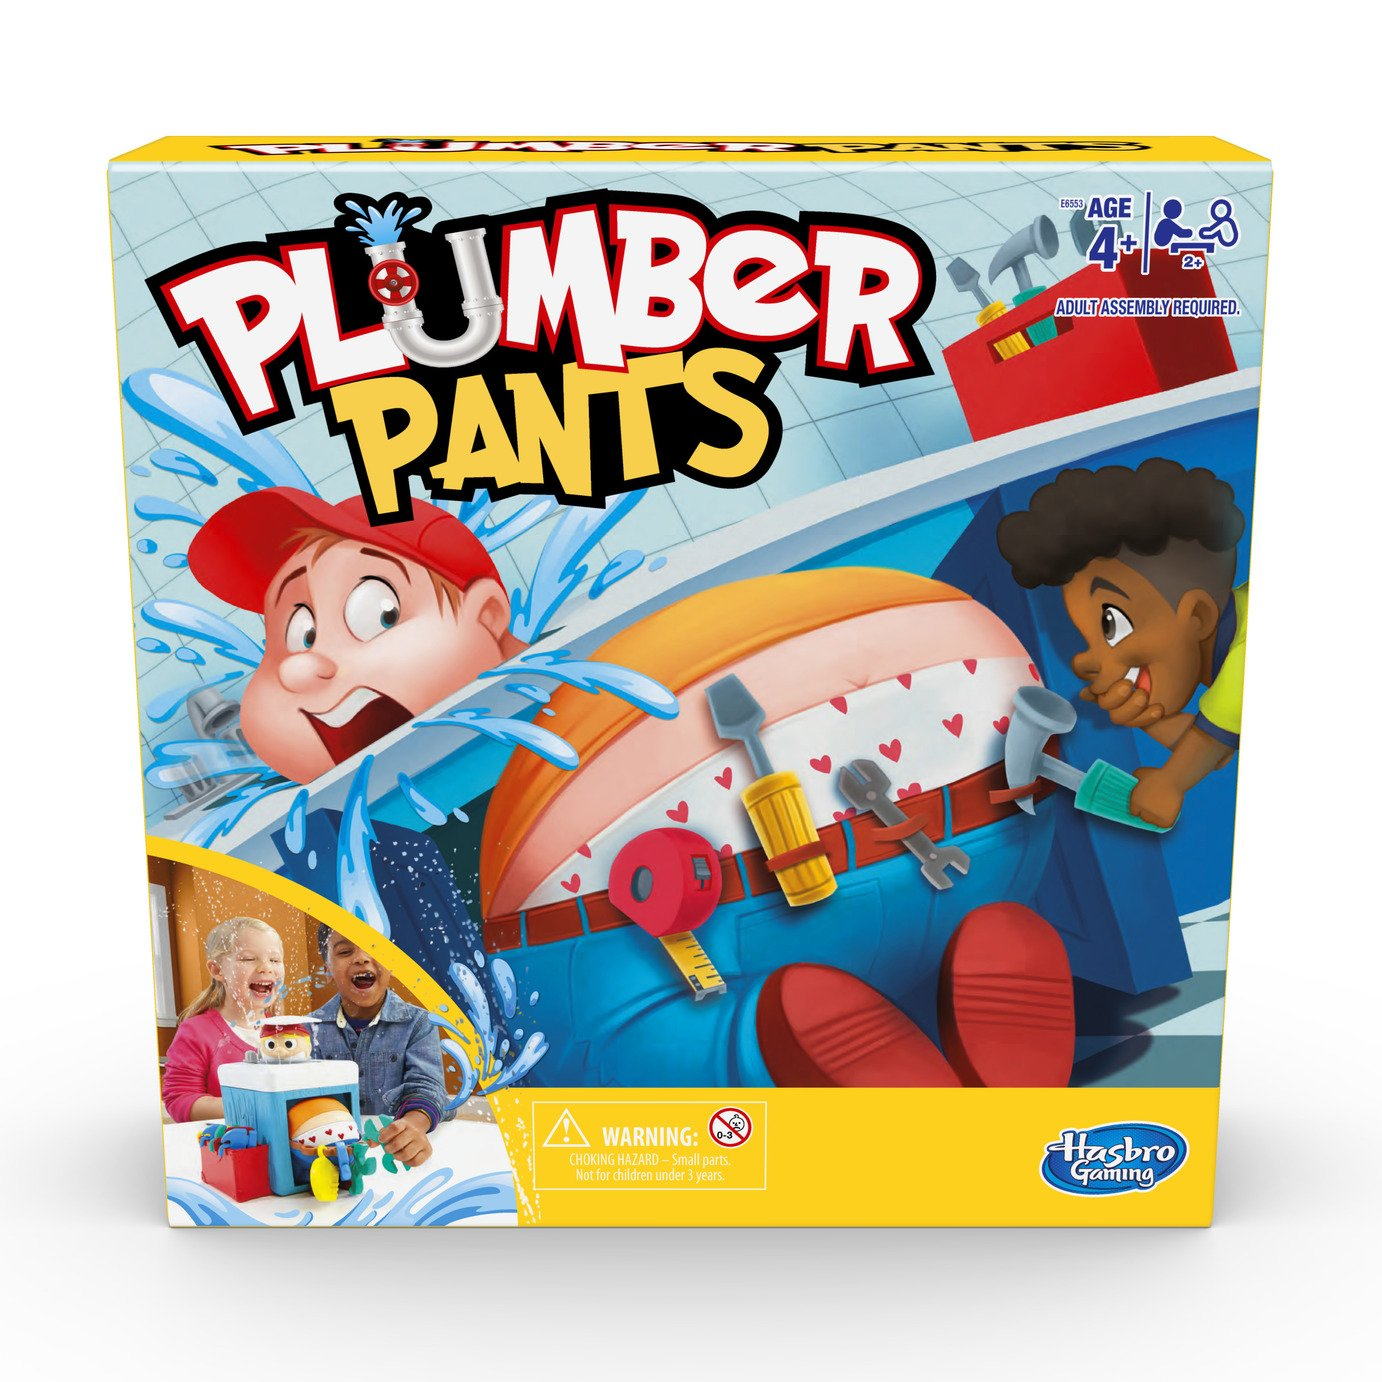 Plumber Pants Game from Hasbro Gaming